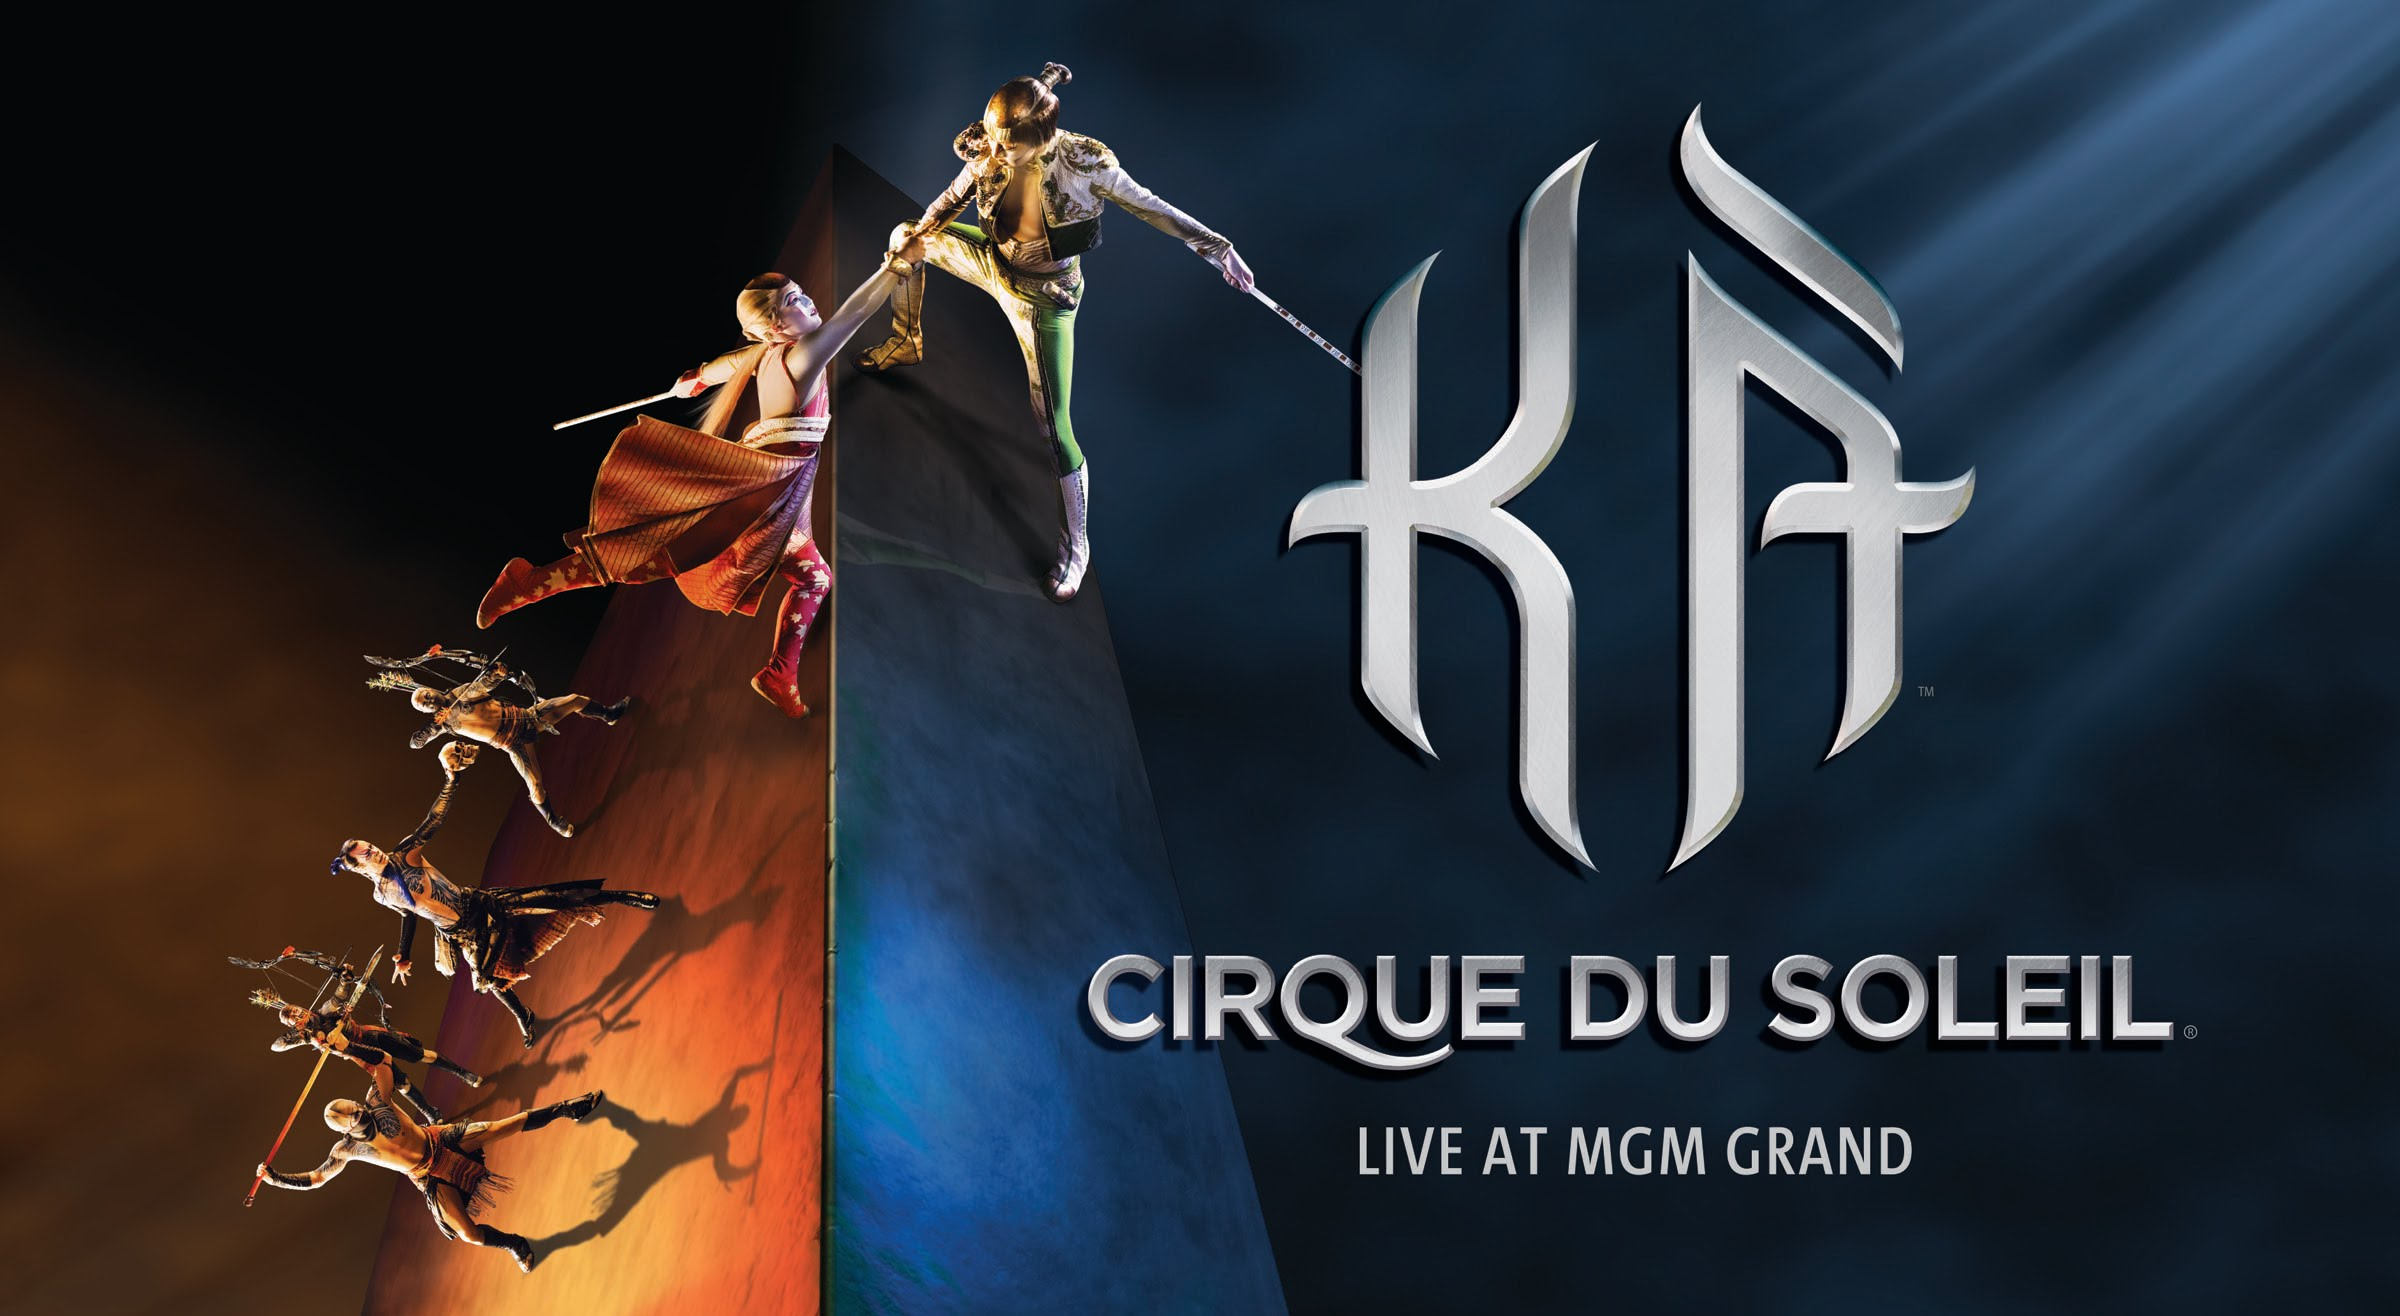 KA in Vegas show review. Best ticket discount for Las Vegas Cirque du Soleil KA show at MGM. Plan & package with free nightclub guest list and restaurant deals.